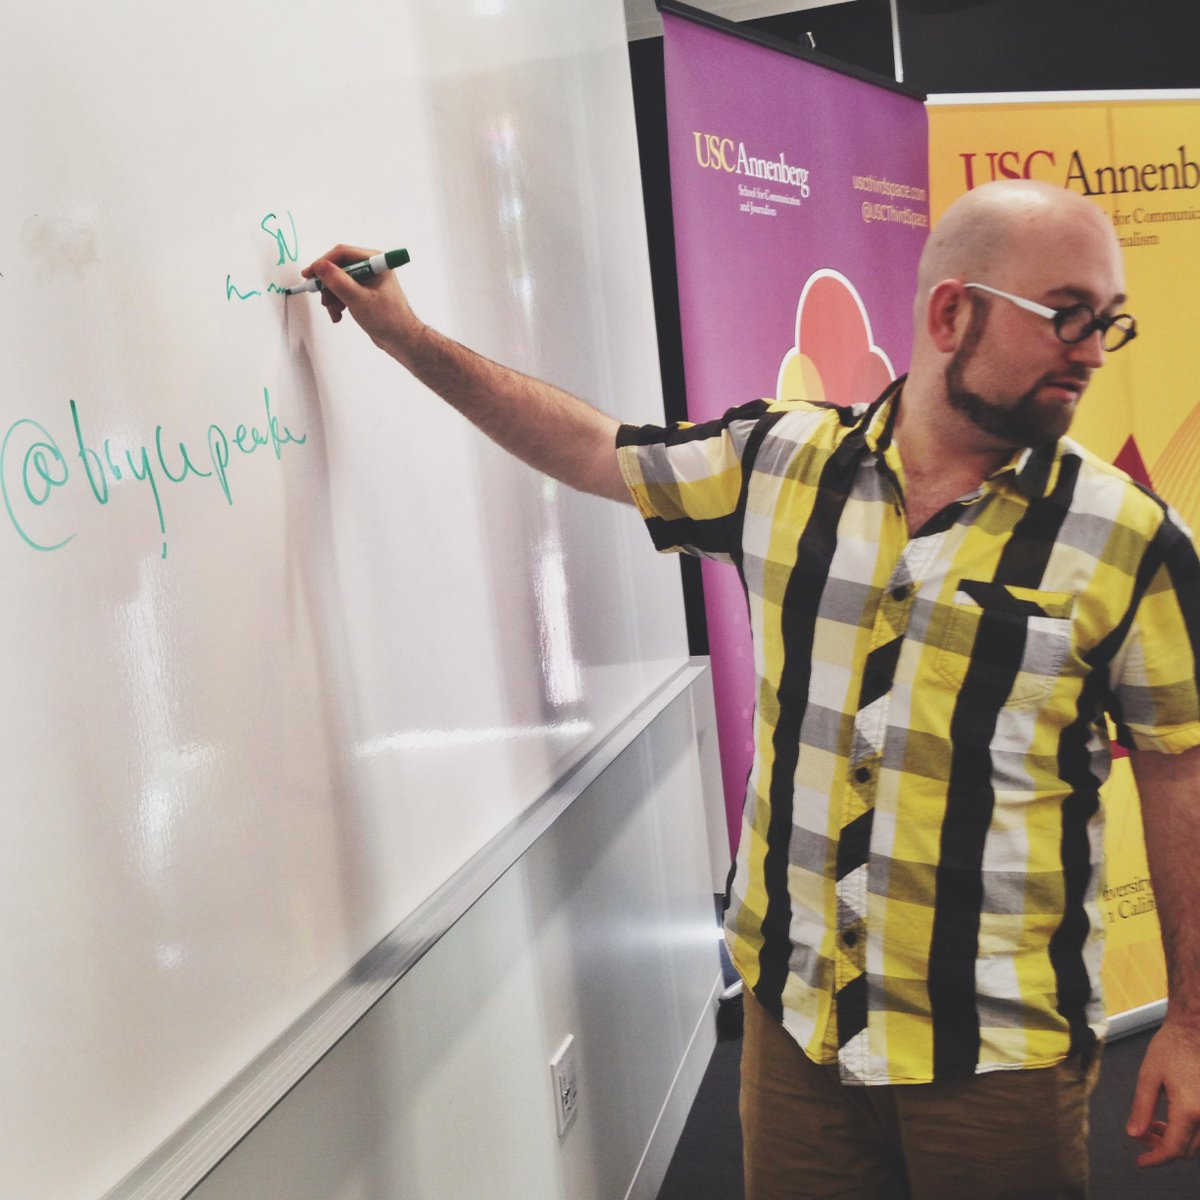 .@brycepeake dropping knowledge at the #MsFembot Hack-a-Thon http://t.co/AlY3gH2ykq